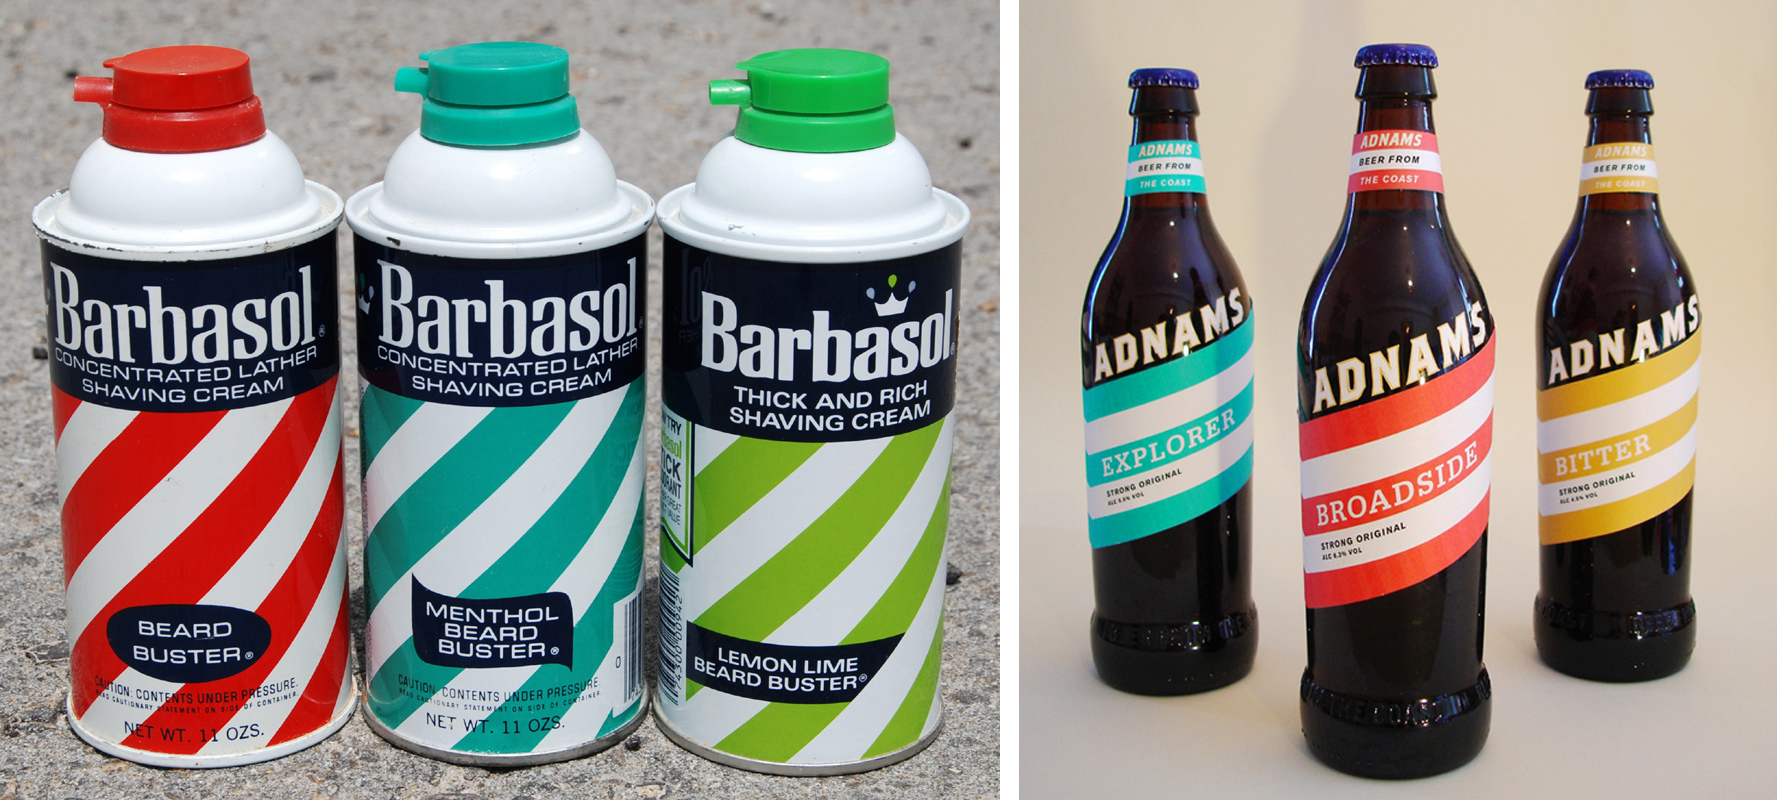 BarbasolAdnams